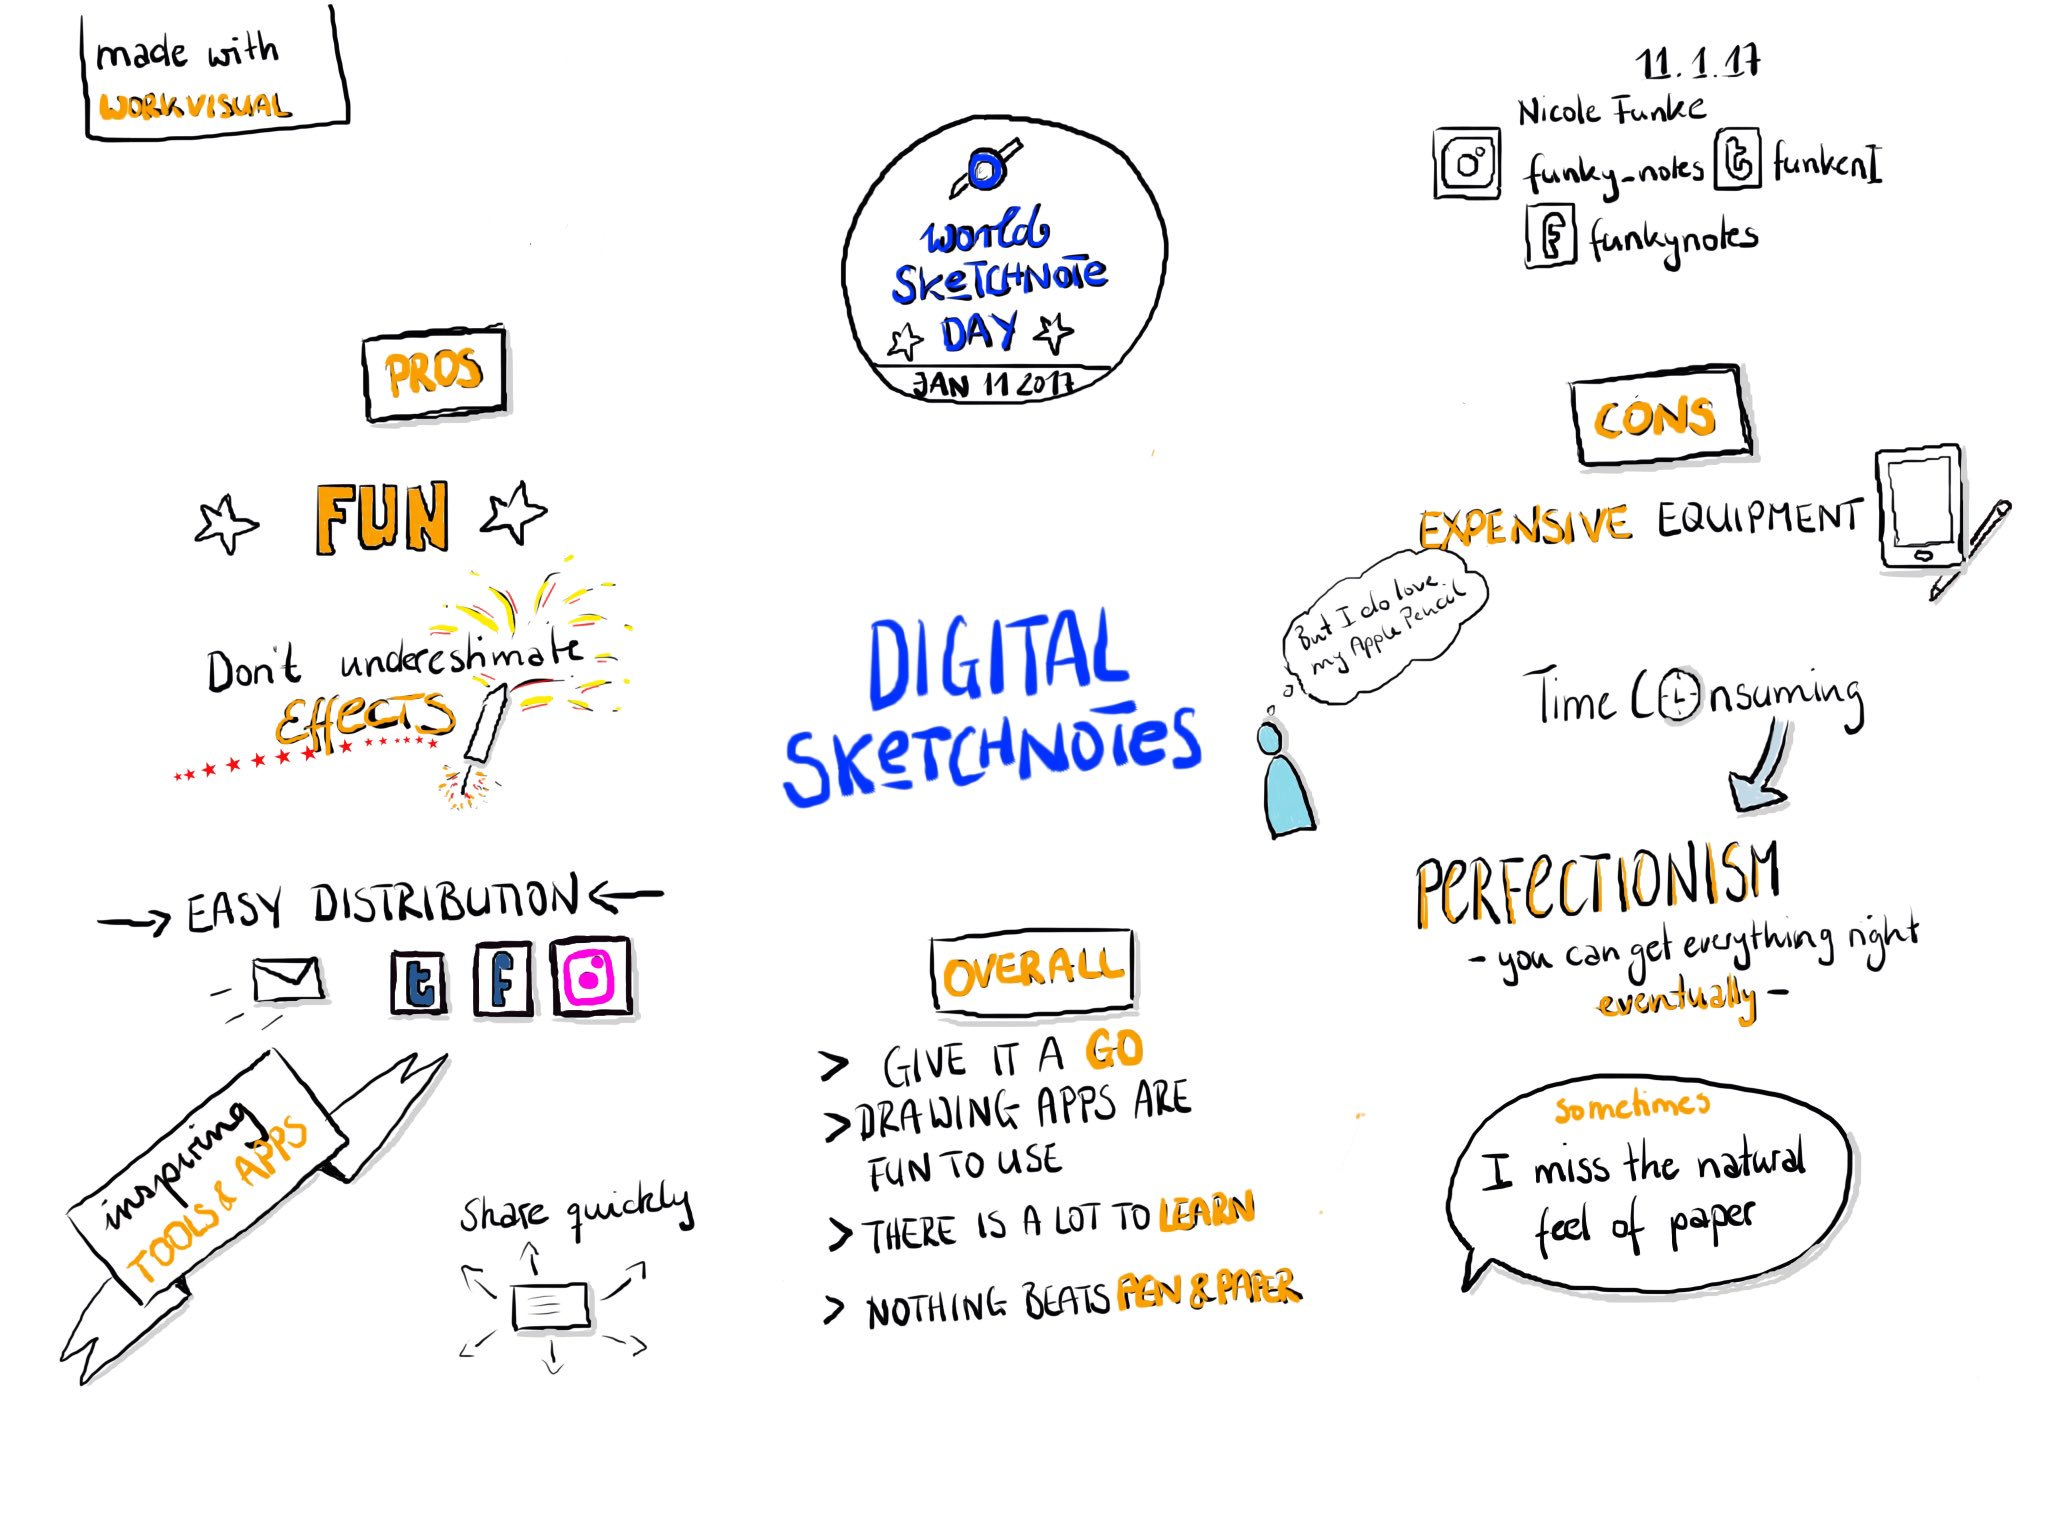 So here comes my #sketchnote on digital sketchnoting. I concentrated on the pros and cons of working digitally. #SNDay2017 @WorkVisualApp https://t.co/xtoxfq21Wt